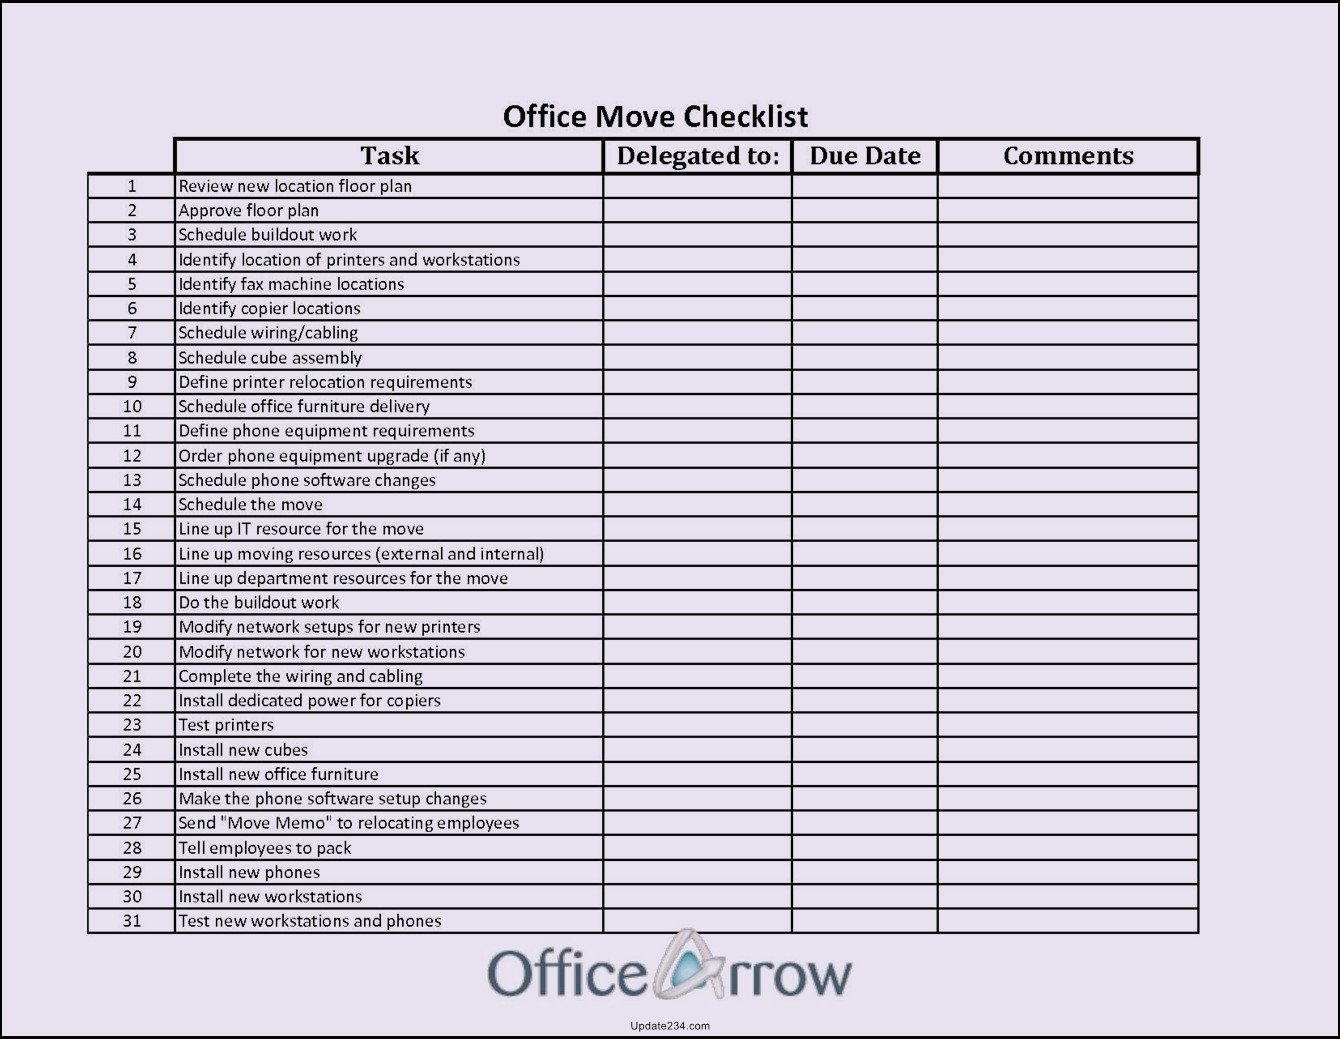 Microsoft Office Check Template Fice Move Checklist Template Excel Template Update234